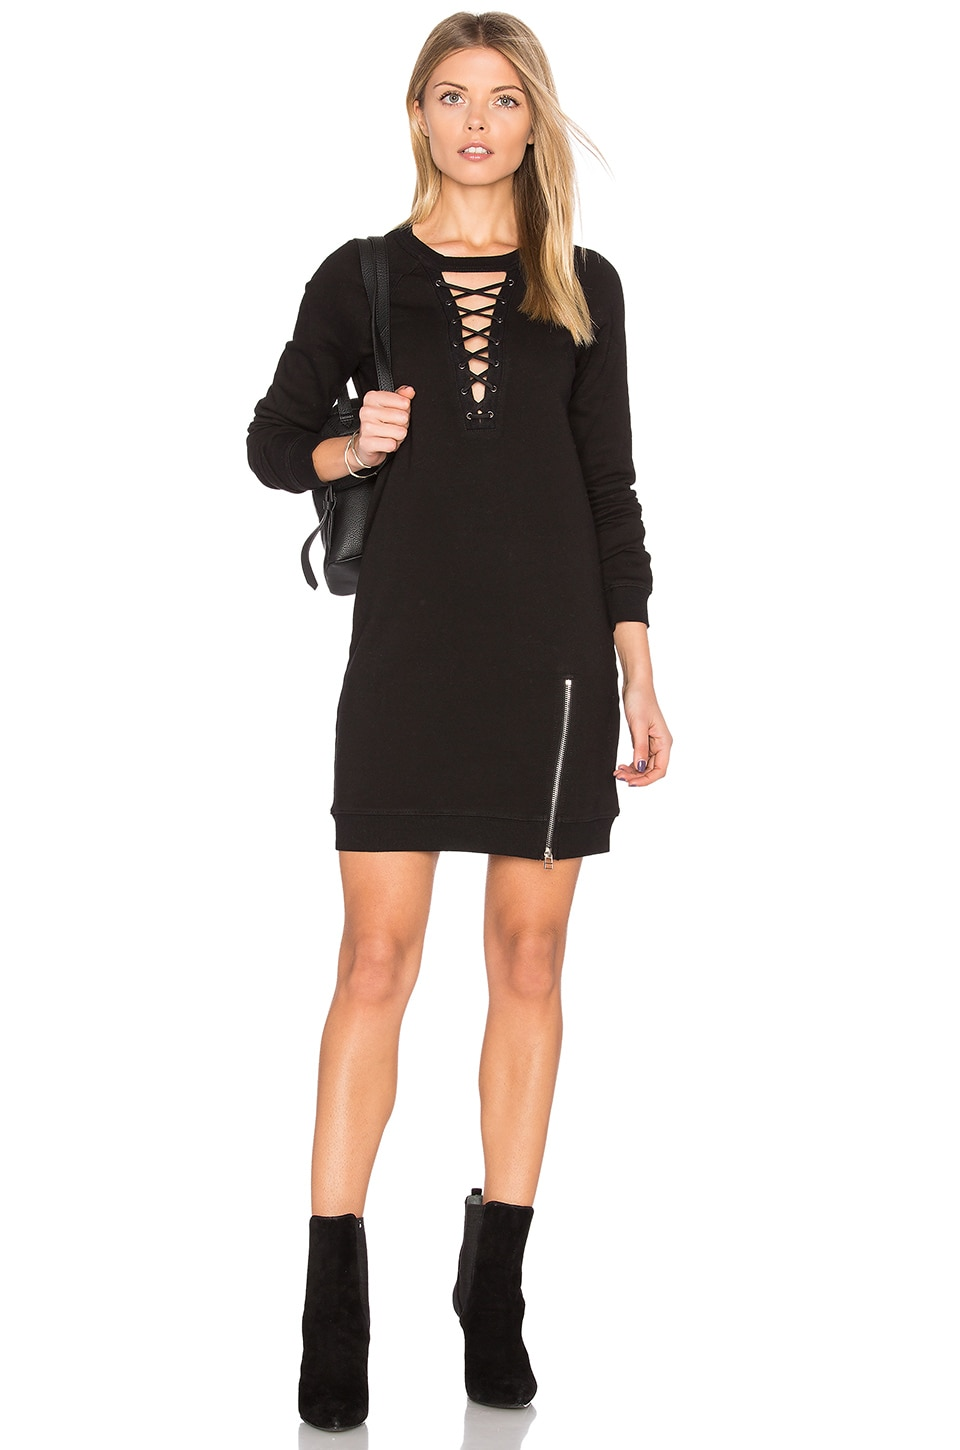 Choker Lace Up Dress by Pam & Gela